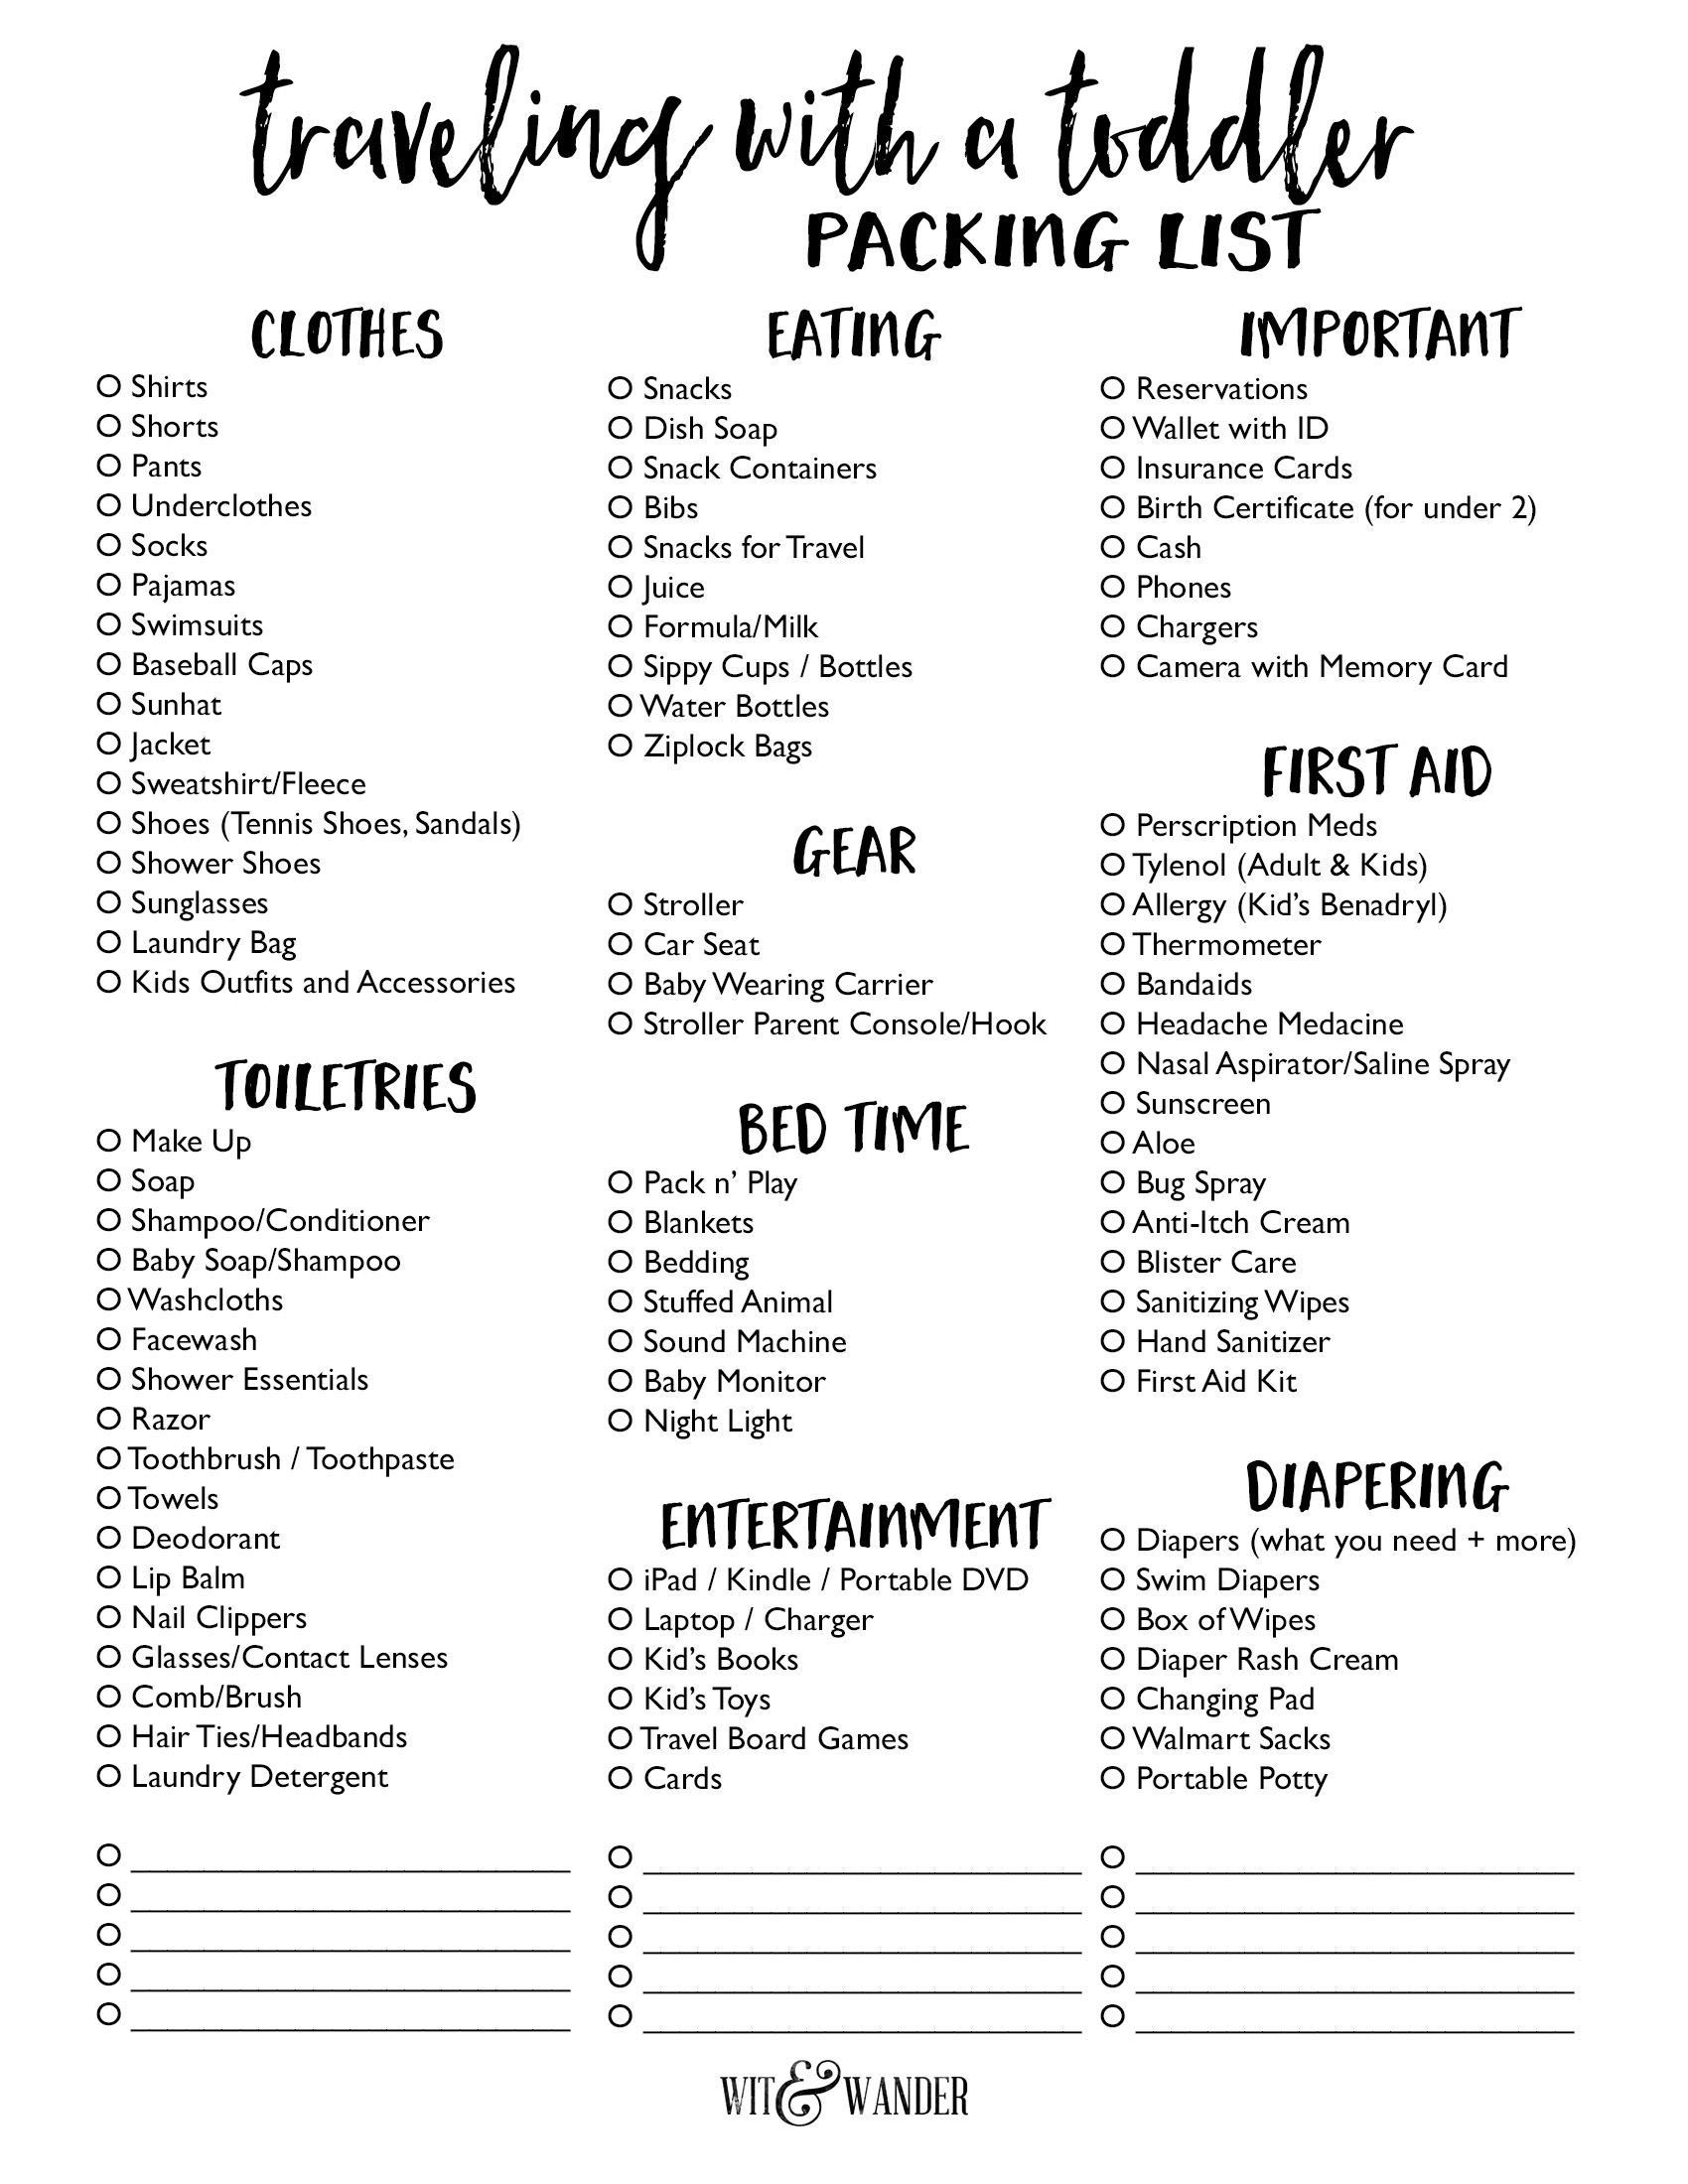 Packing List For Traveling With A Toddler